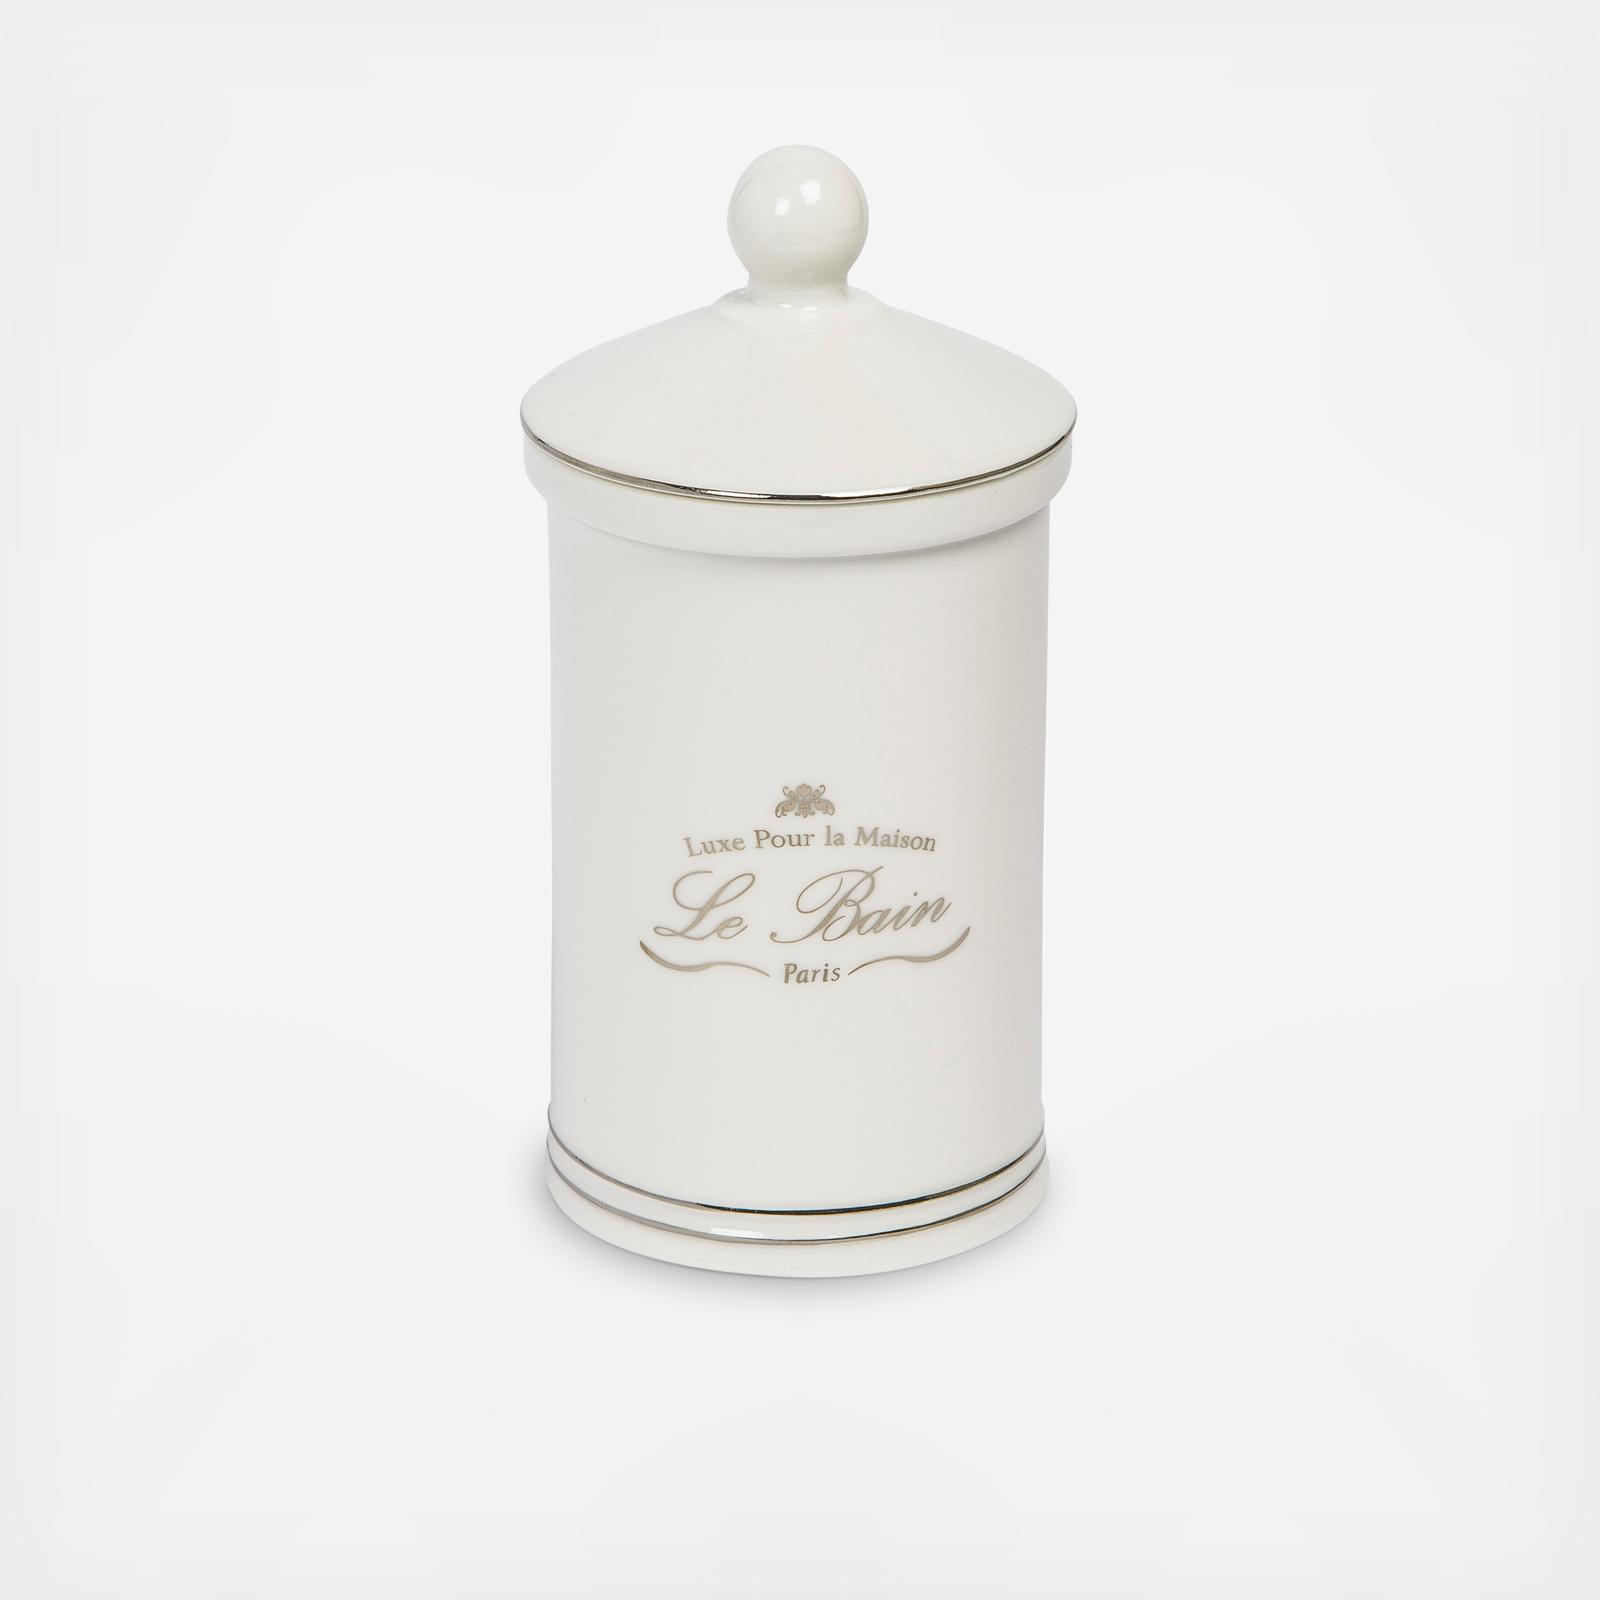 Groovy Le Bain Cotton Jar By Kassatex Wedding Planning Registry Gifts Home Interior And Landscaping Ologienasavecom